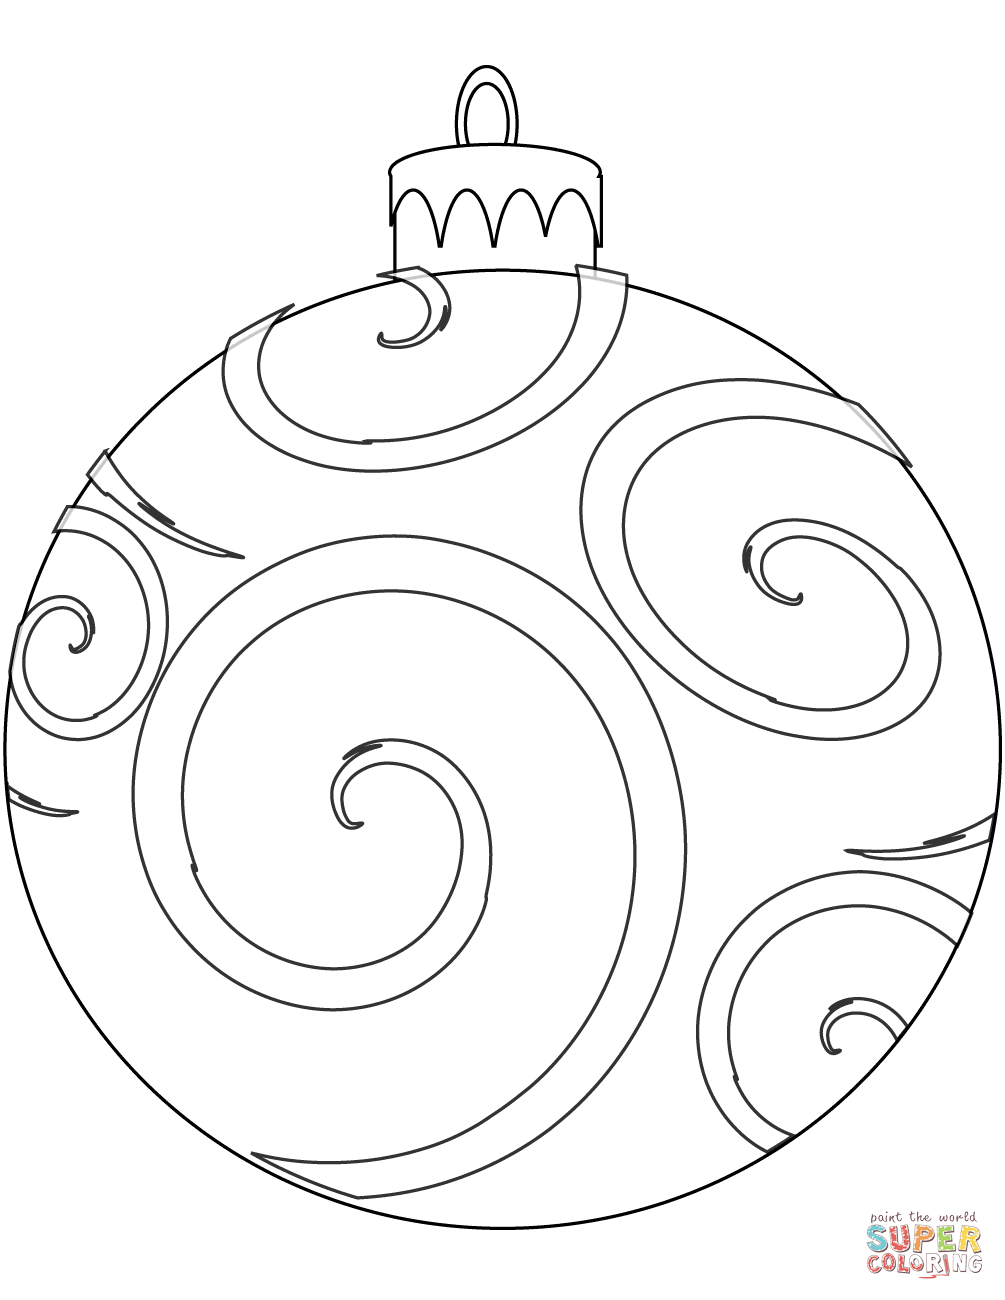 Christmas Coloring Pages Ornaments With Holiday Ornament Page Free Printable